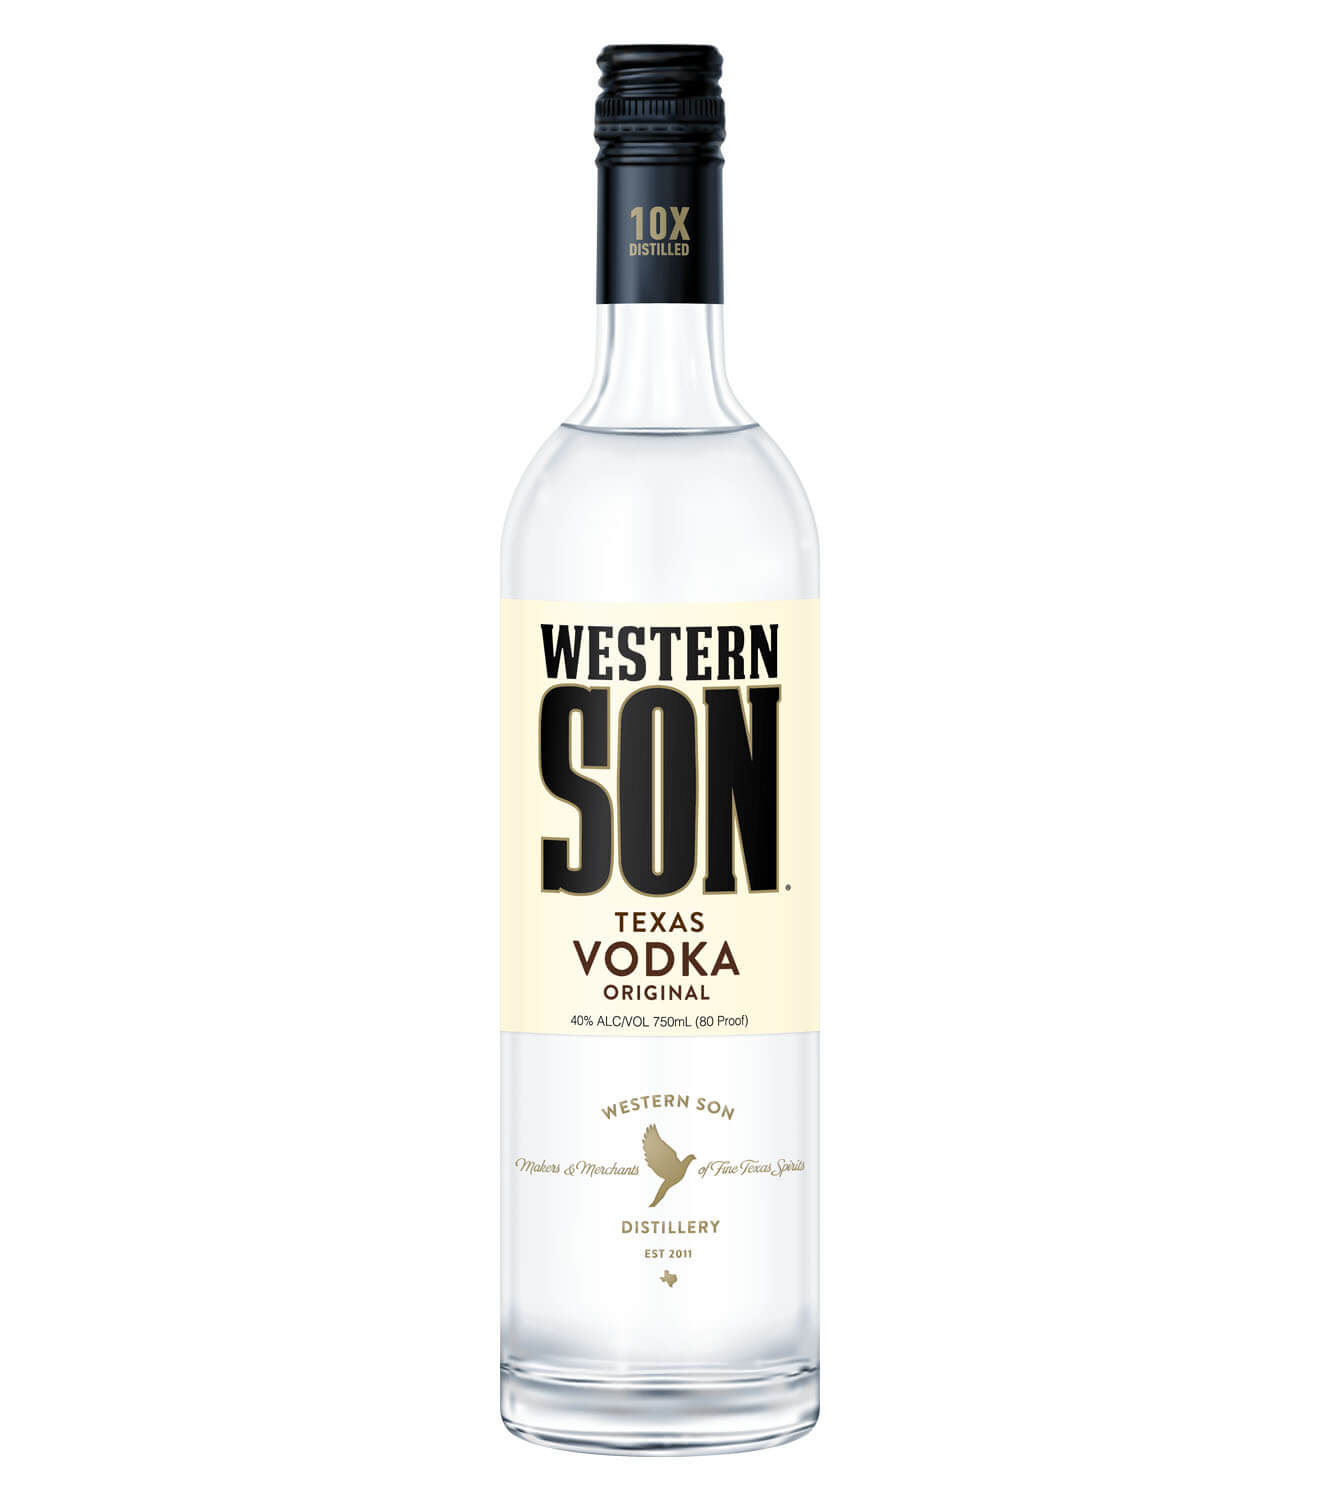 Western Son, bottle on white